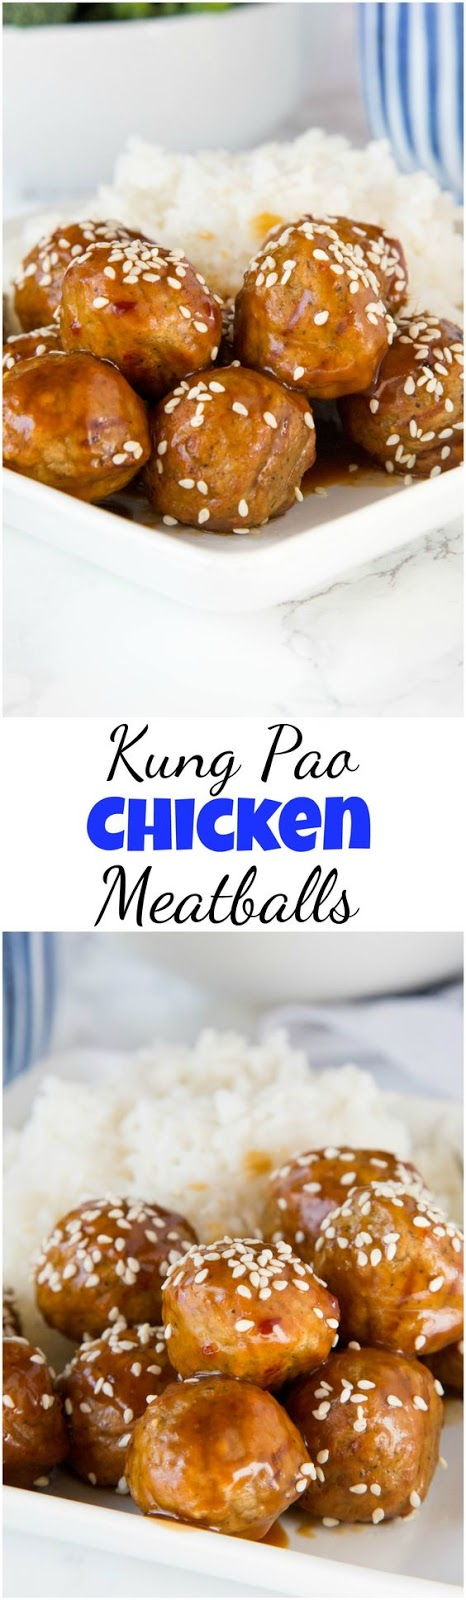 Kung Pao Chicken Meatballs Recipe